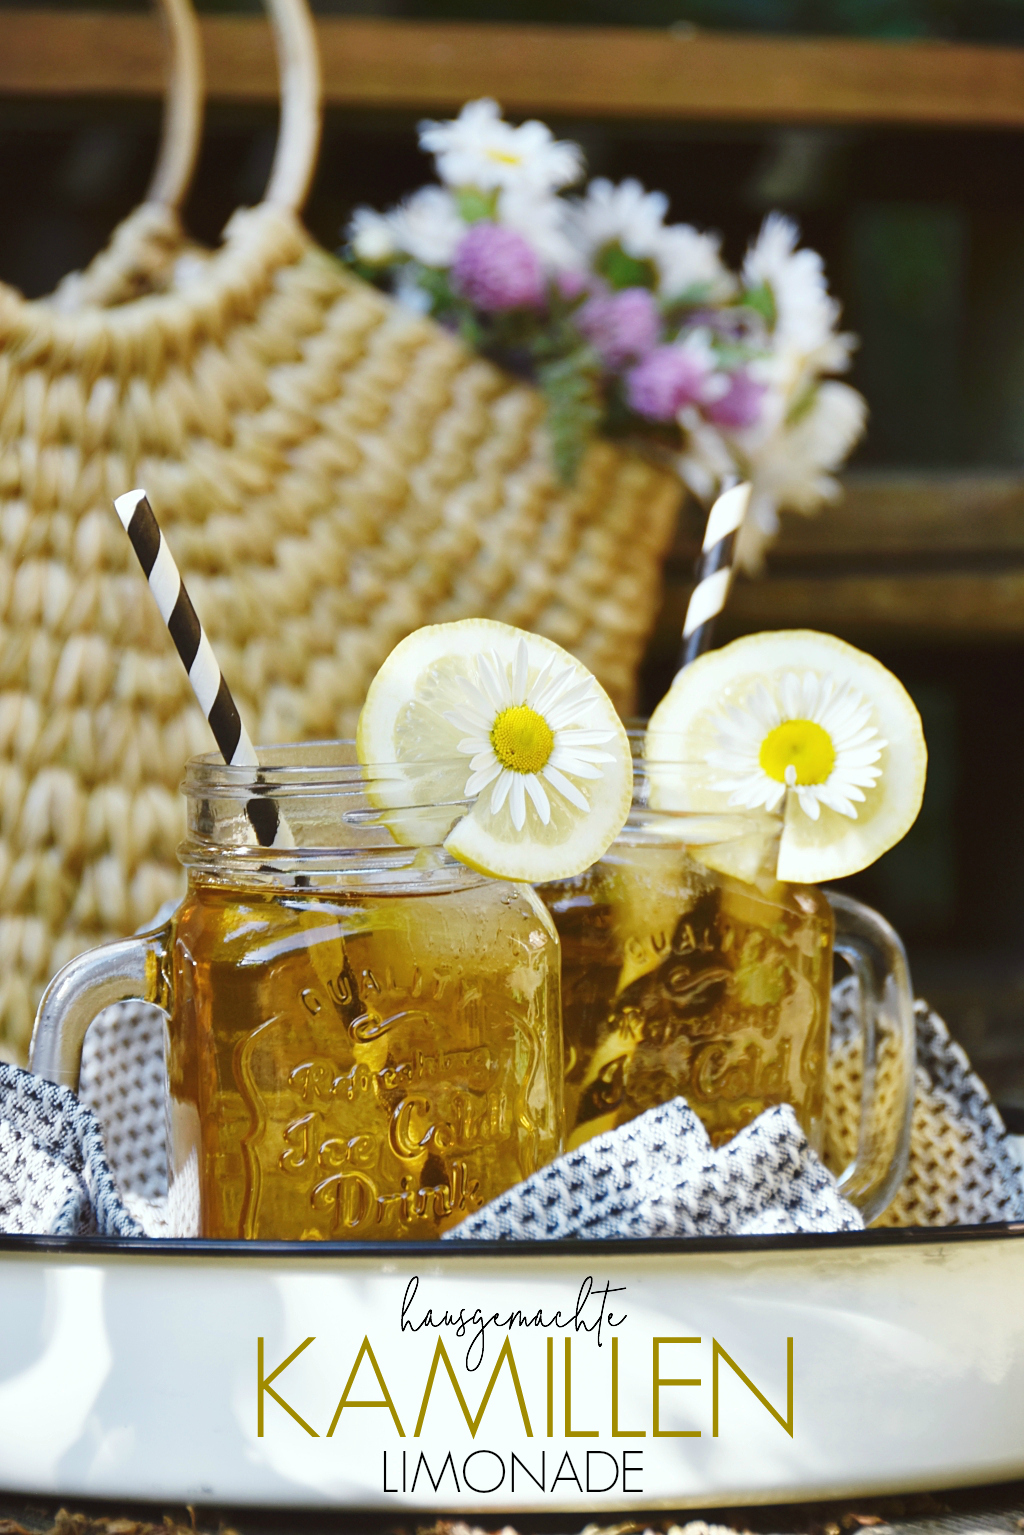 Erfrischende Limonaden selbermachen ist im Sommer der Hit. Mein neustes Limo-Rezept ist etwas ungewöhnlich... Kamillenlimonade mit Honig & Zitrone | Recipe for homemade Chamomille Lemonade w/ Honey & Lemon | luziapimpinella.com